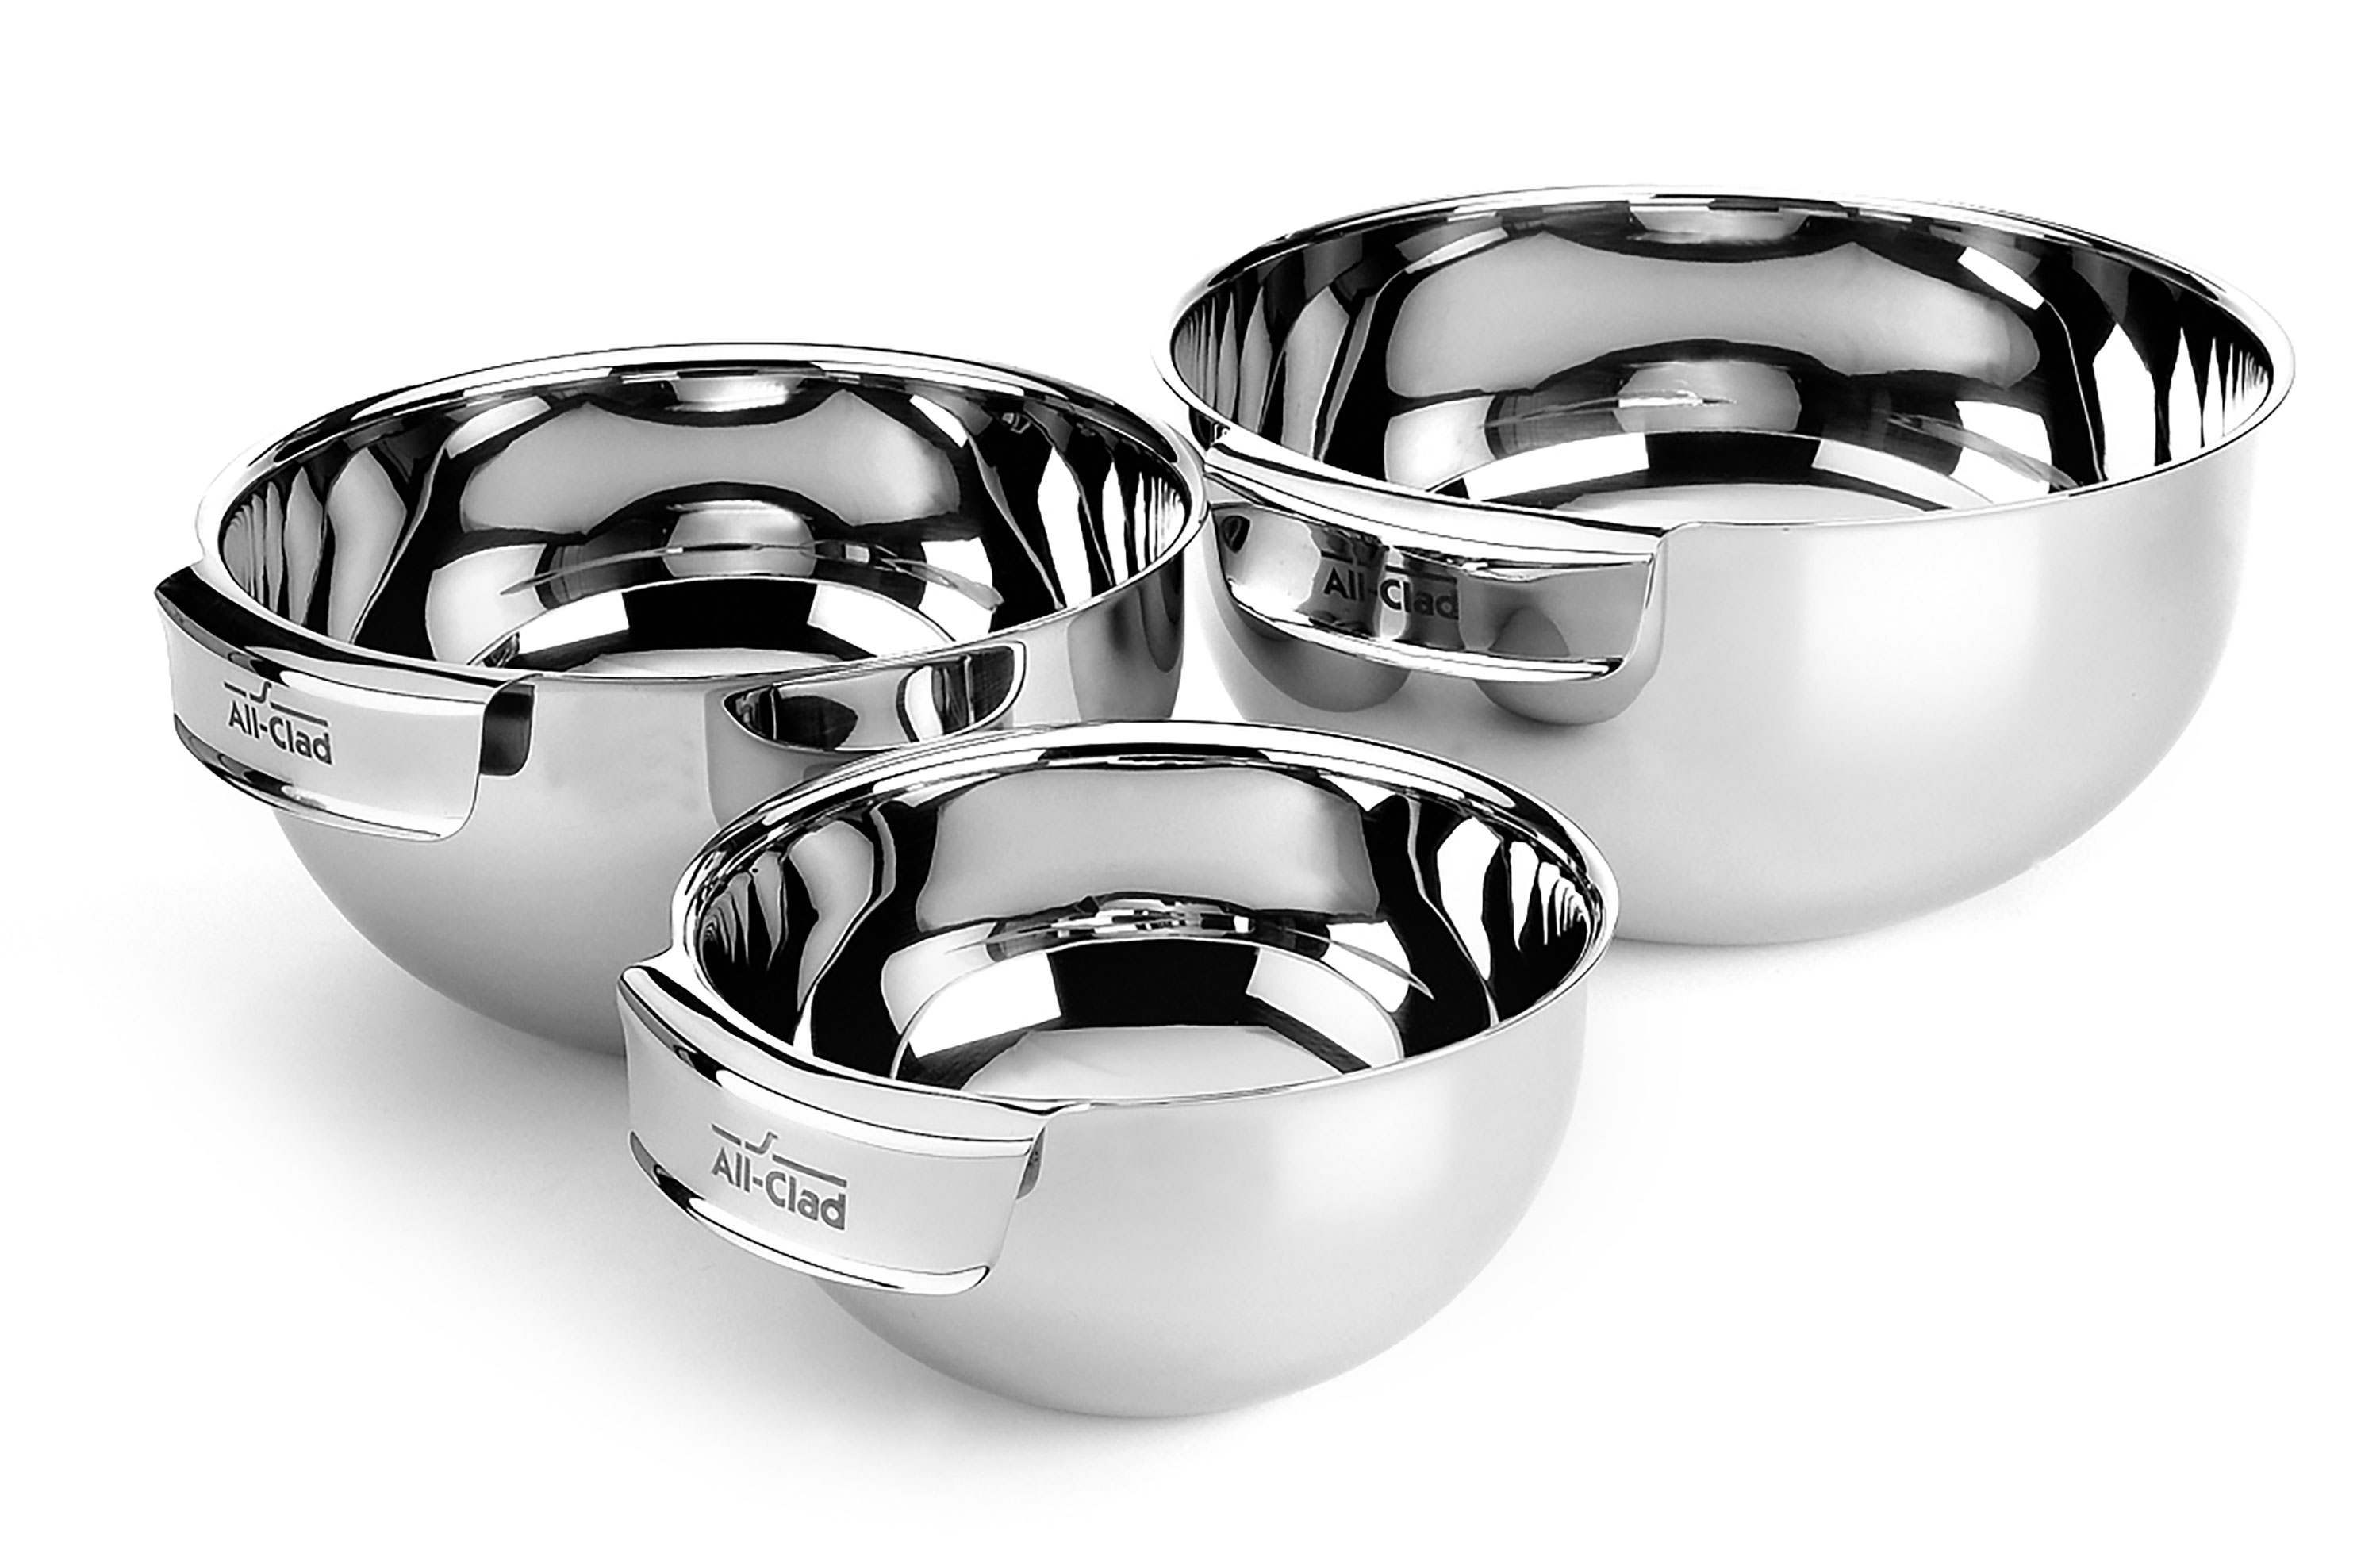 All Clad Mixing Bowl Set Cutlery And More